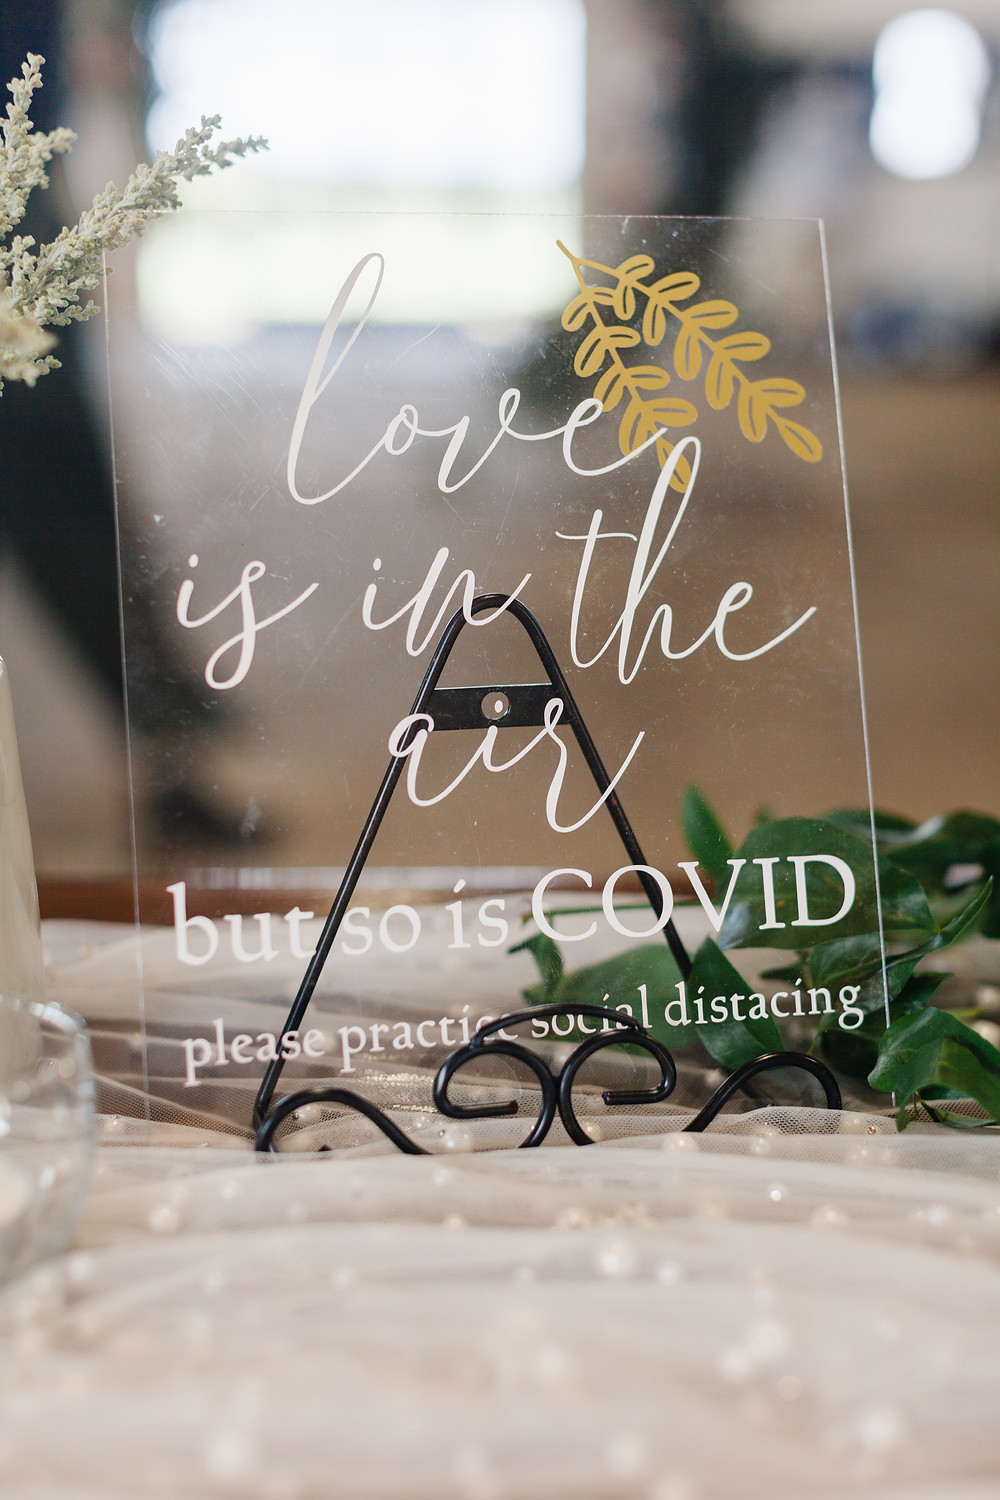 """an image of a sign that says """"love is in the air but so is COVID-19 so please practice social distancing"""""""